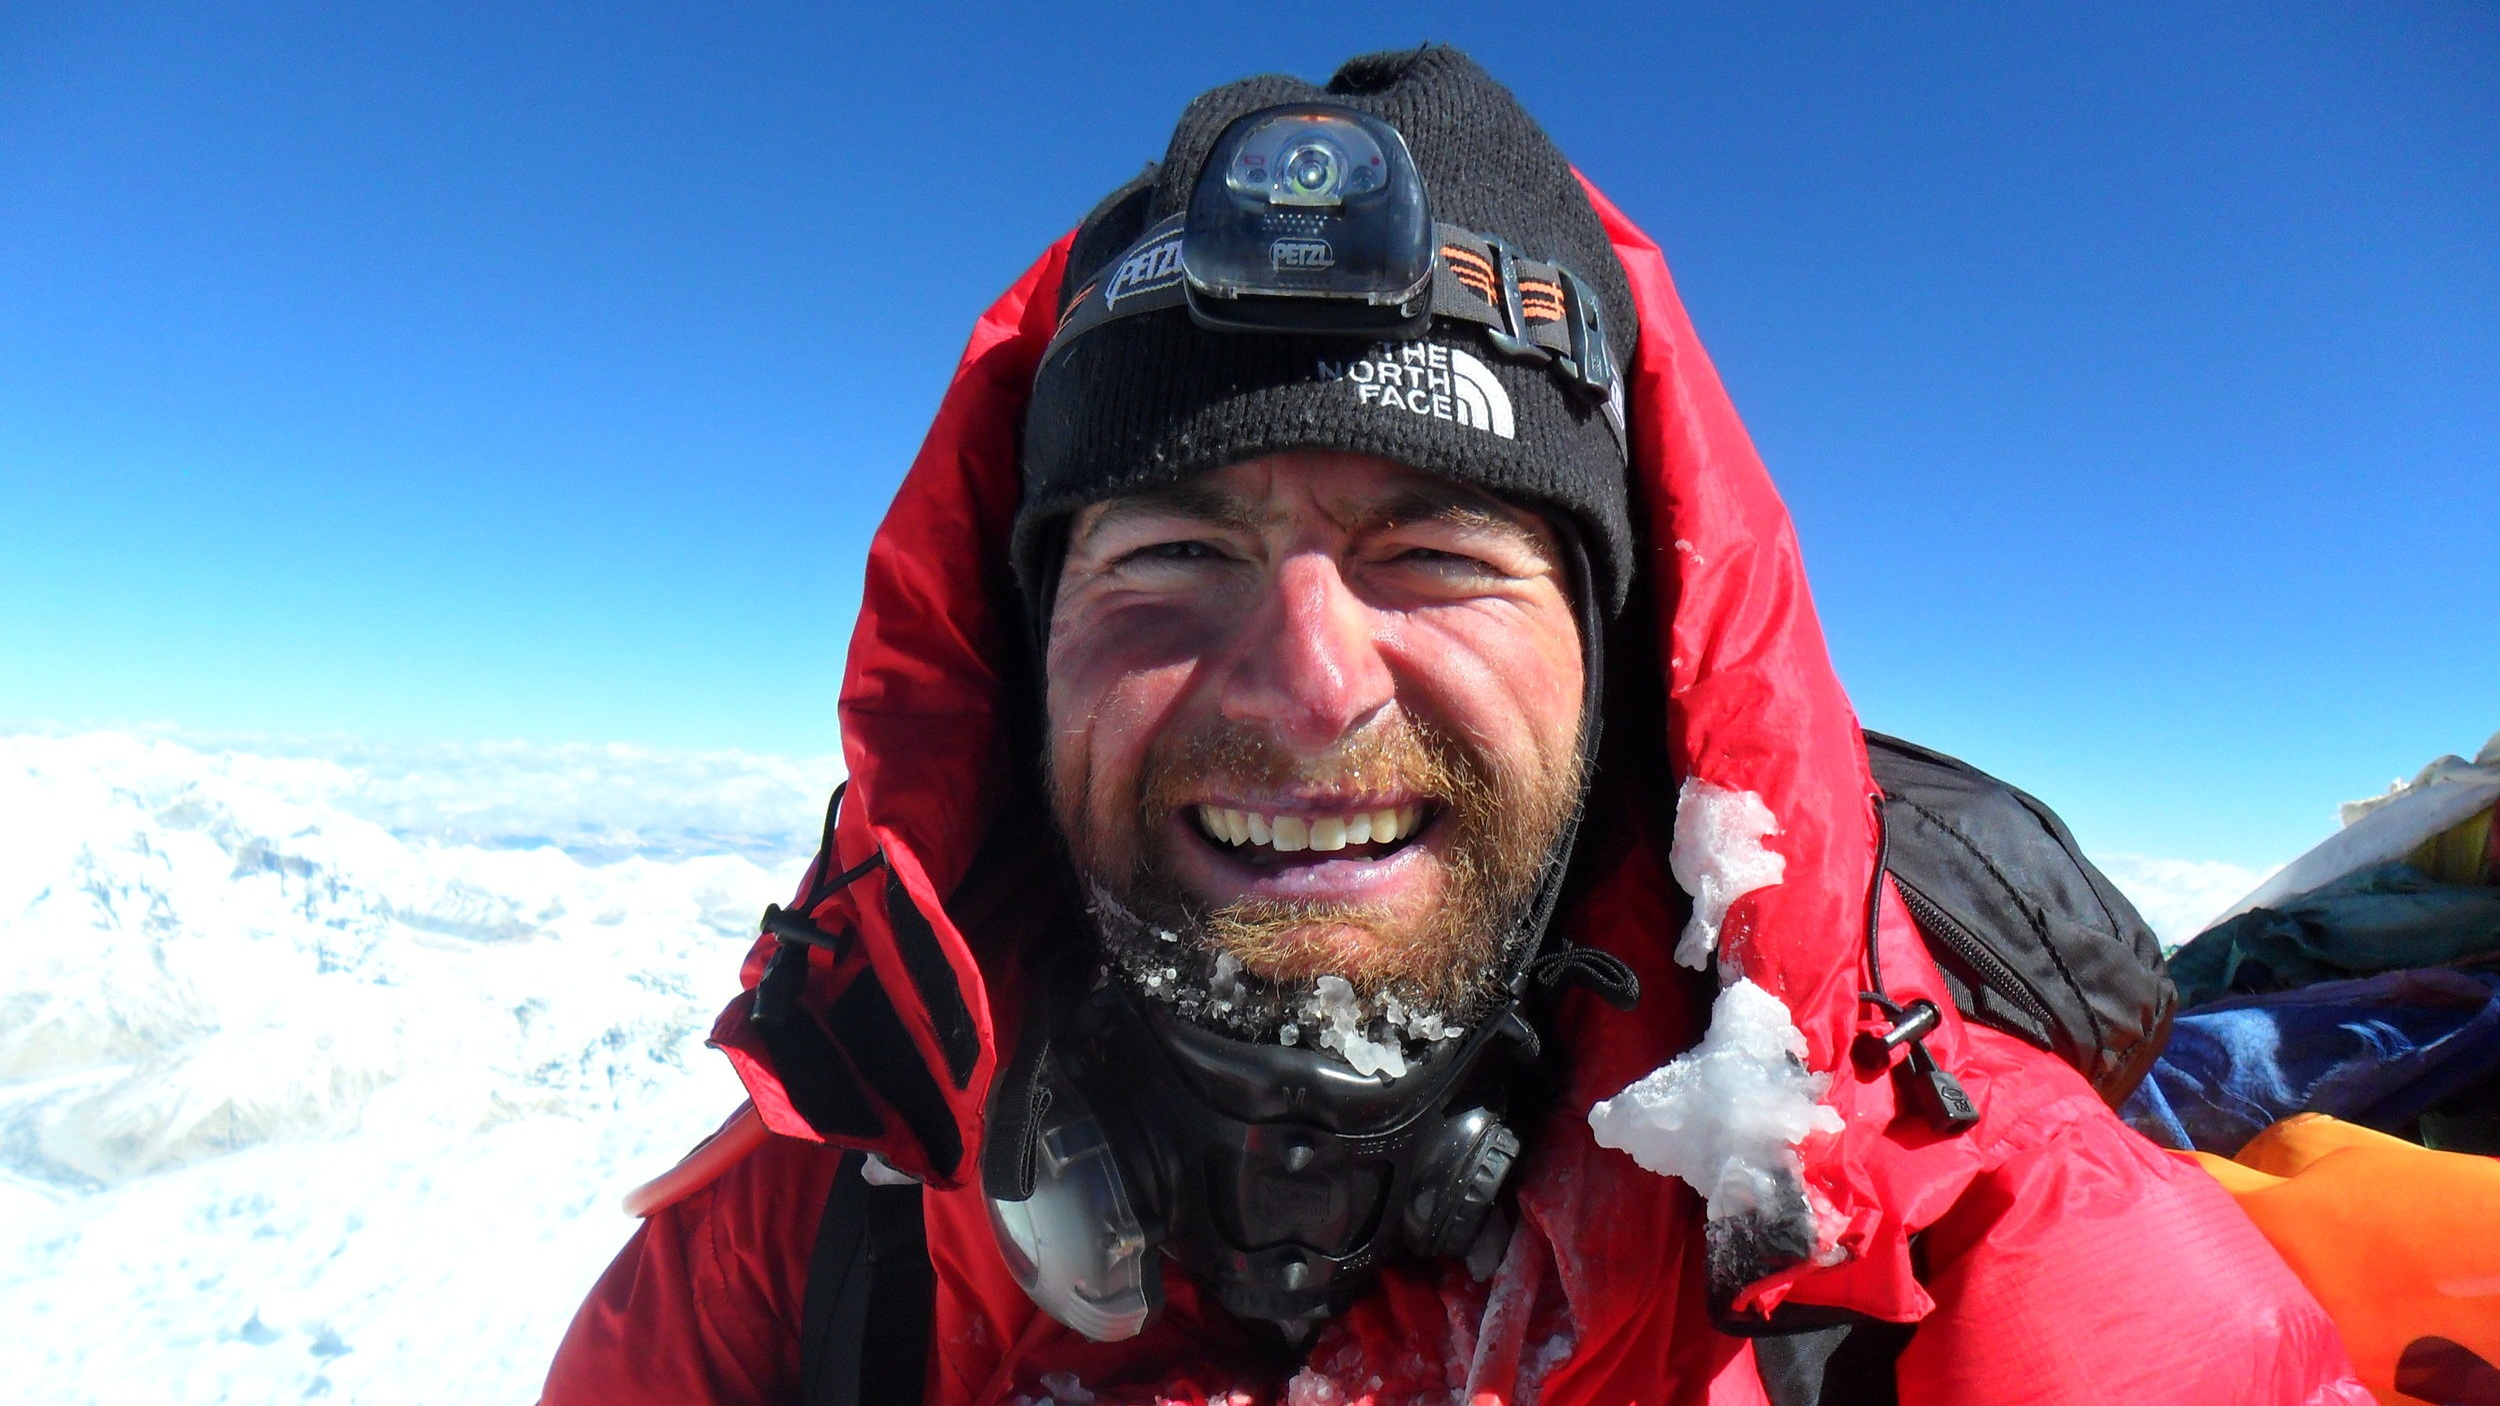 On+the+summit+of+everest+on+11.05.2011.jpg